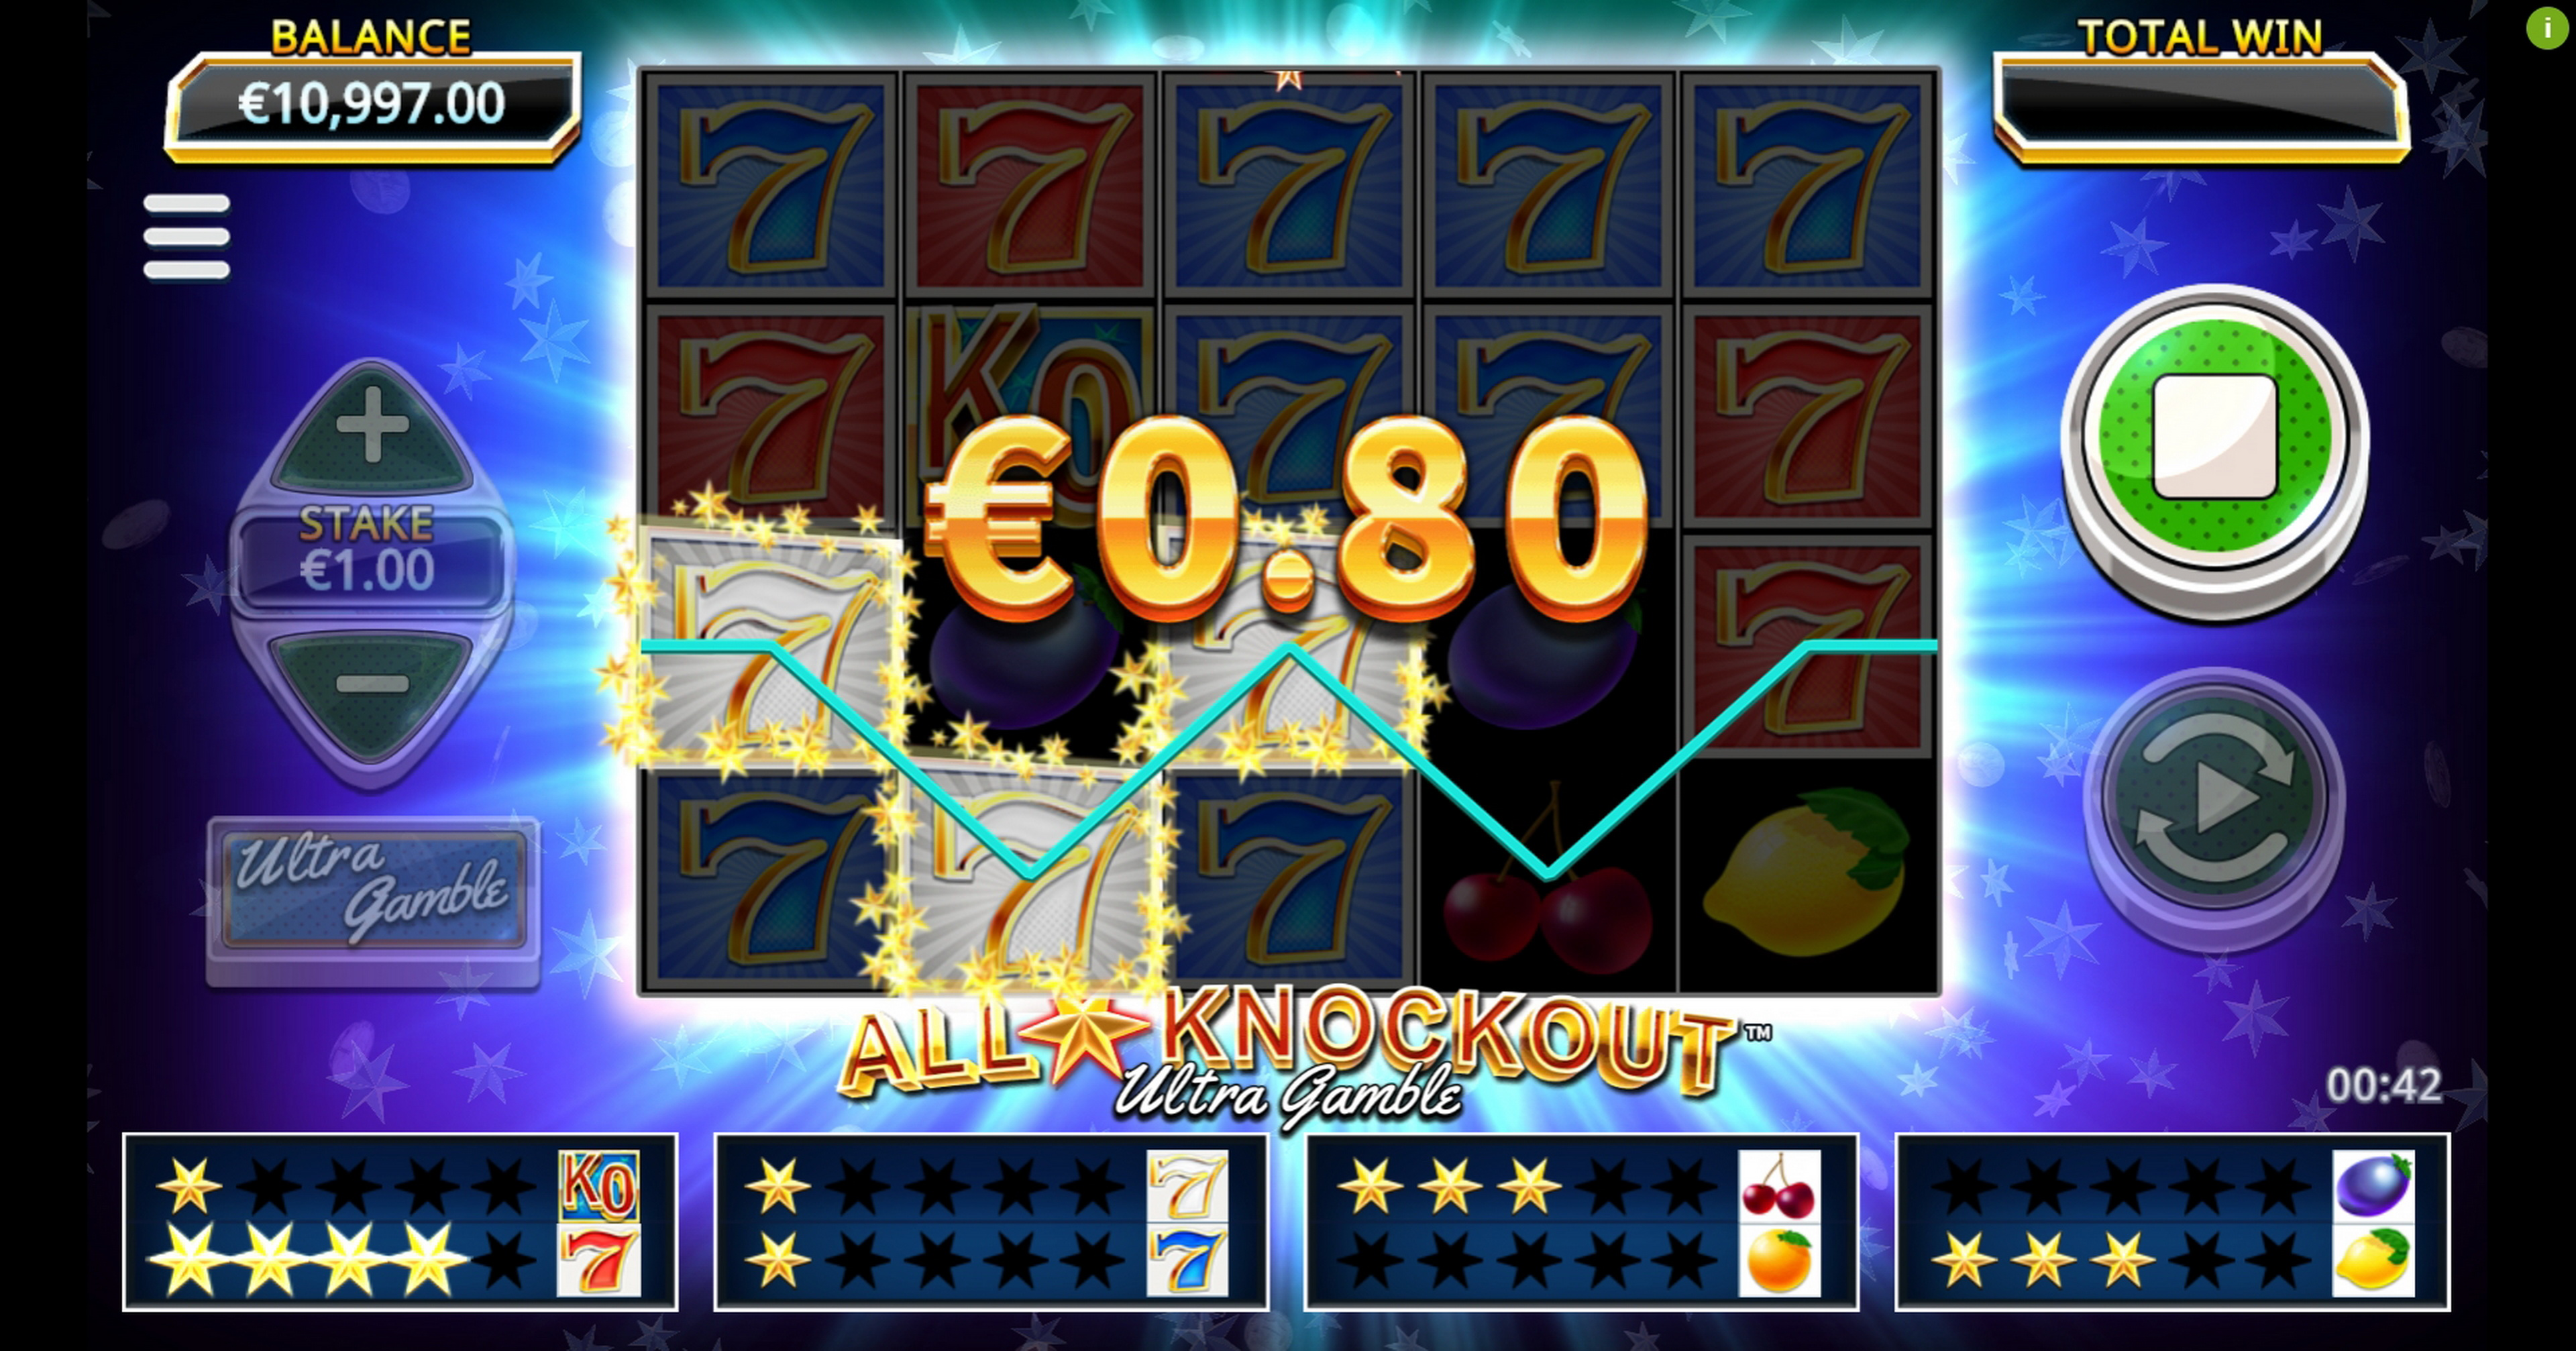 Win Money in All Star Knockout Ultra Gamble Free Slot Game by Northern Lights Gaming